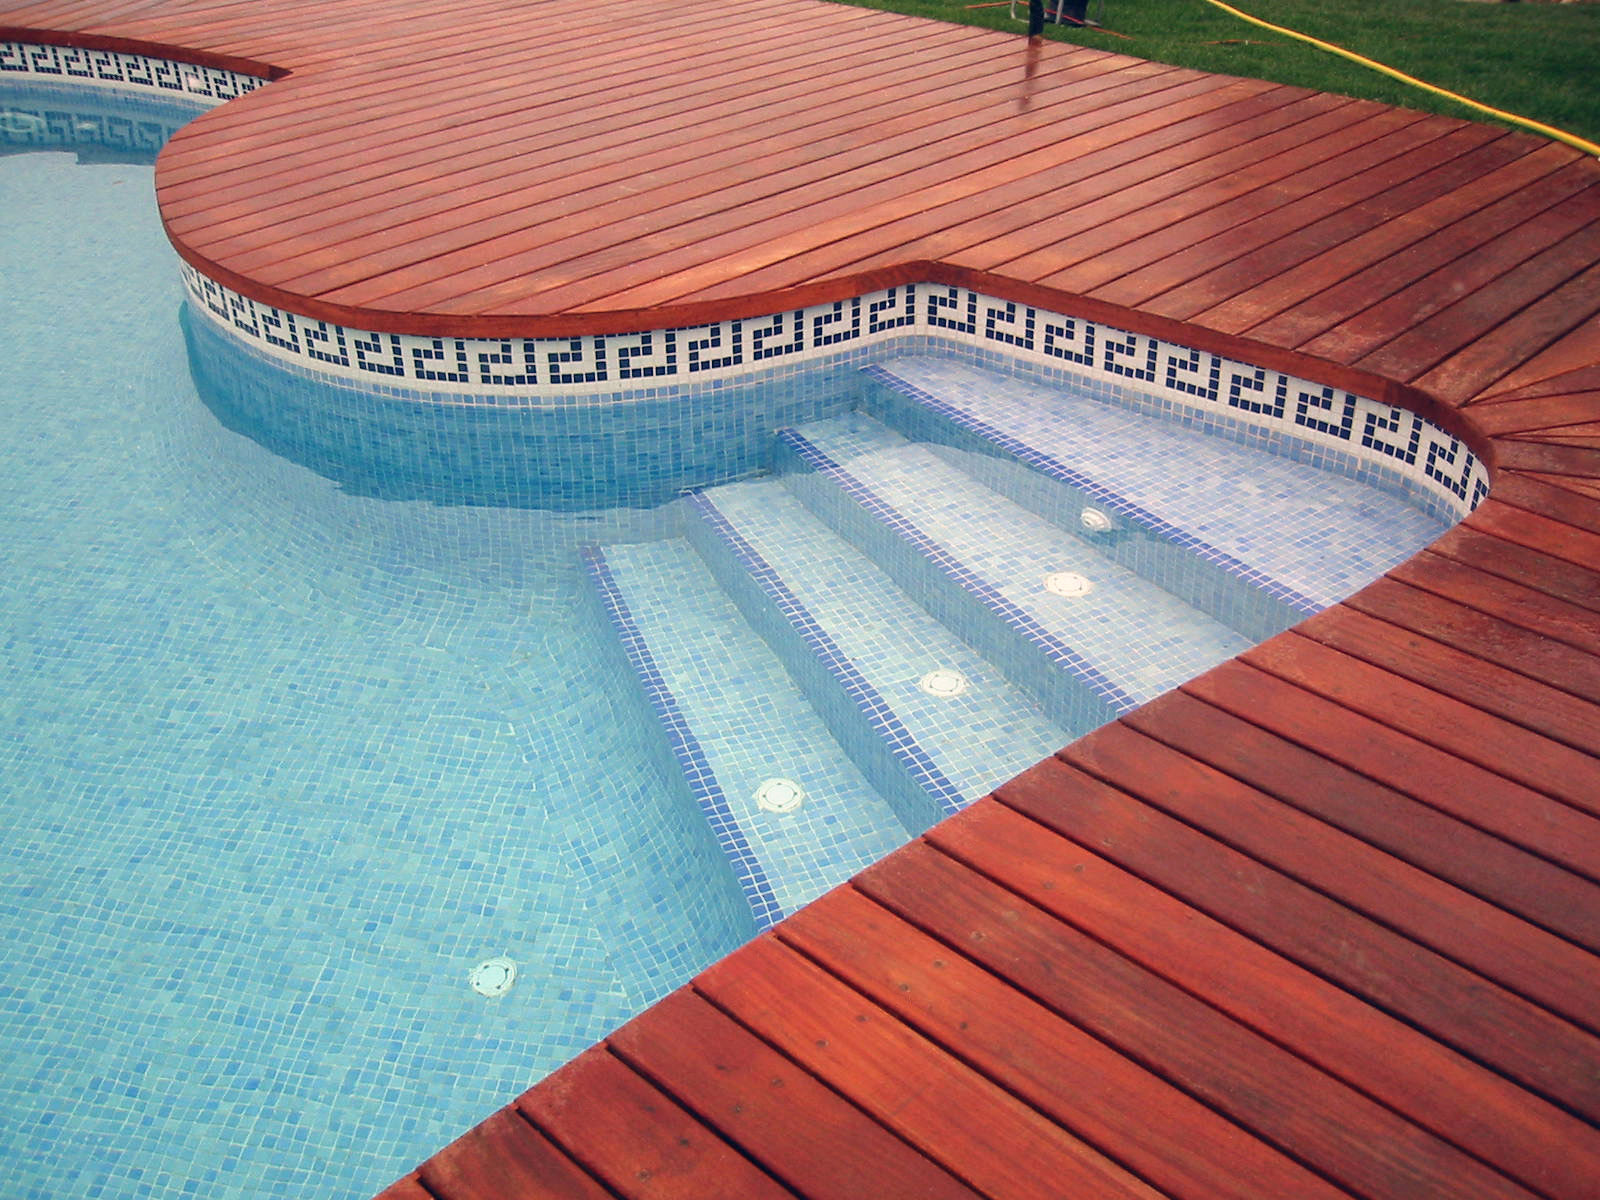 glass-mosaic-tiles-for-swimming-pools-glass-mosaic-tiles-for-modern-pools.jpg